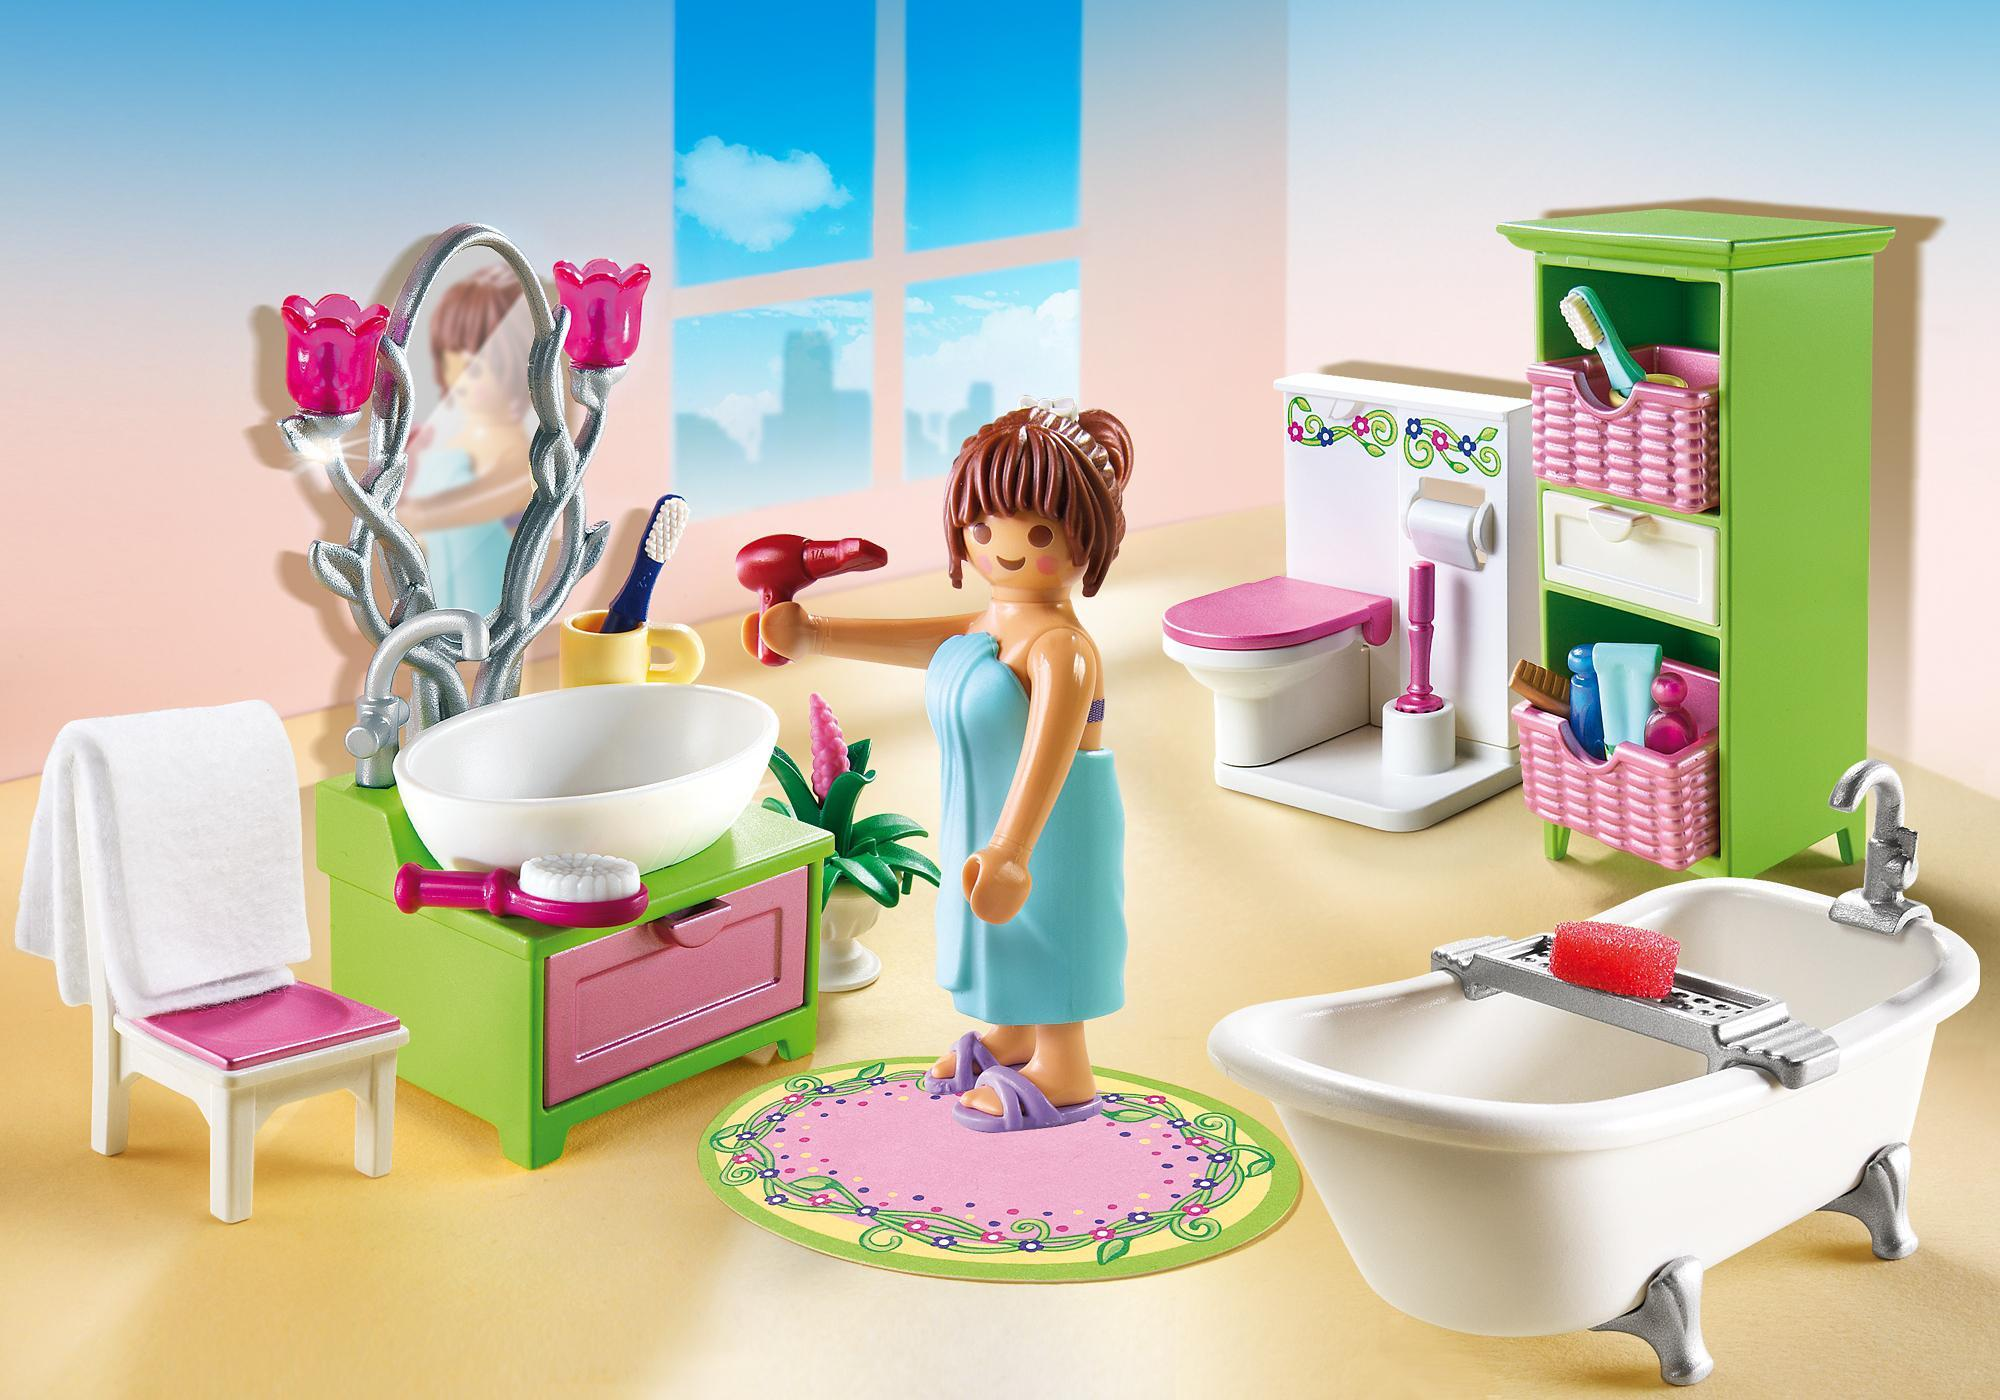 http://media.playmobil.com/i/playmobil/5307_product_detail/Vintage Bathroom